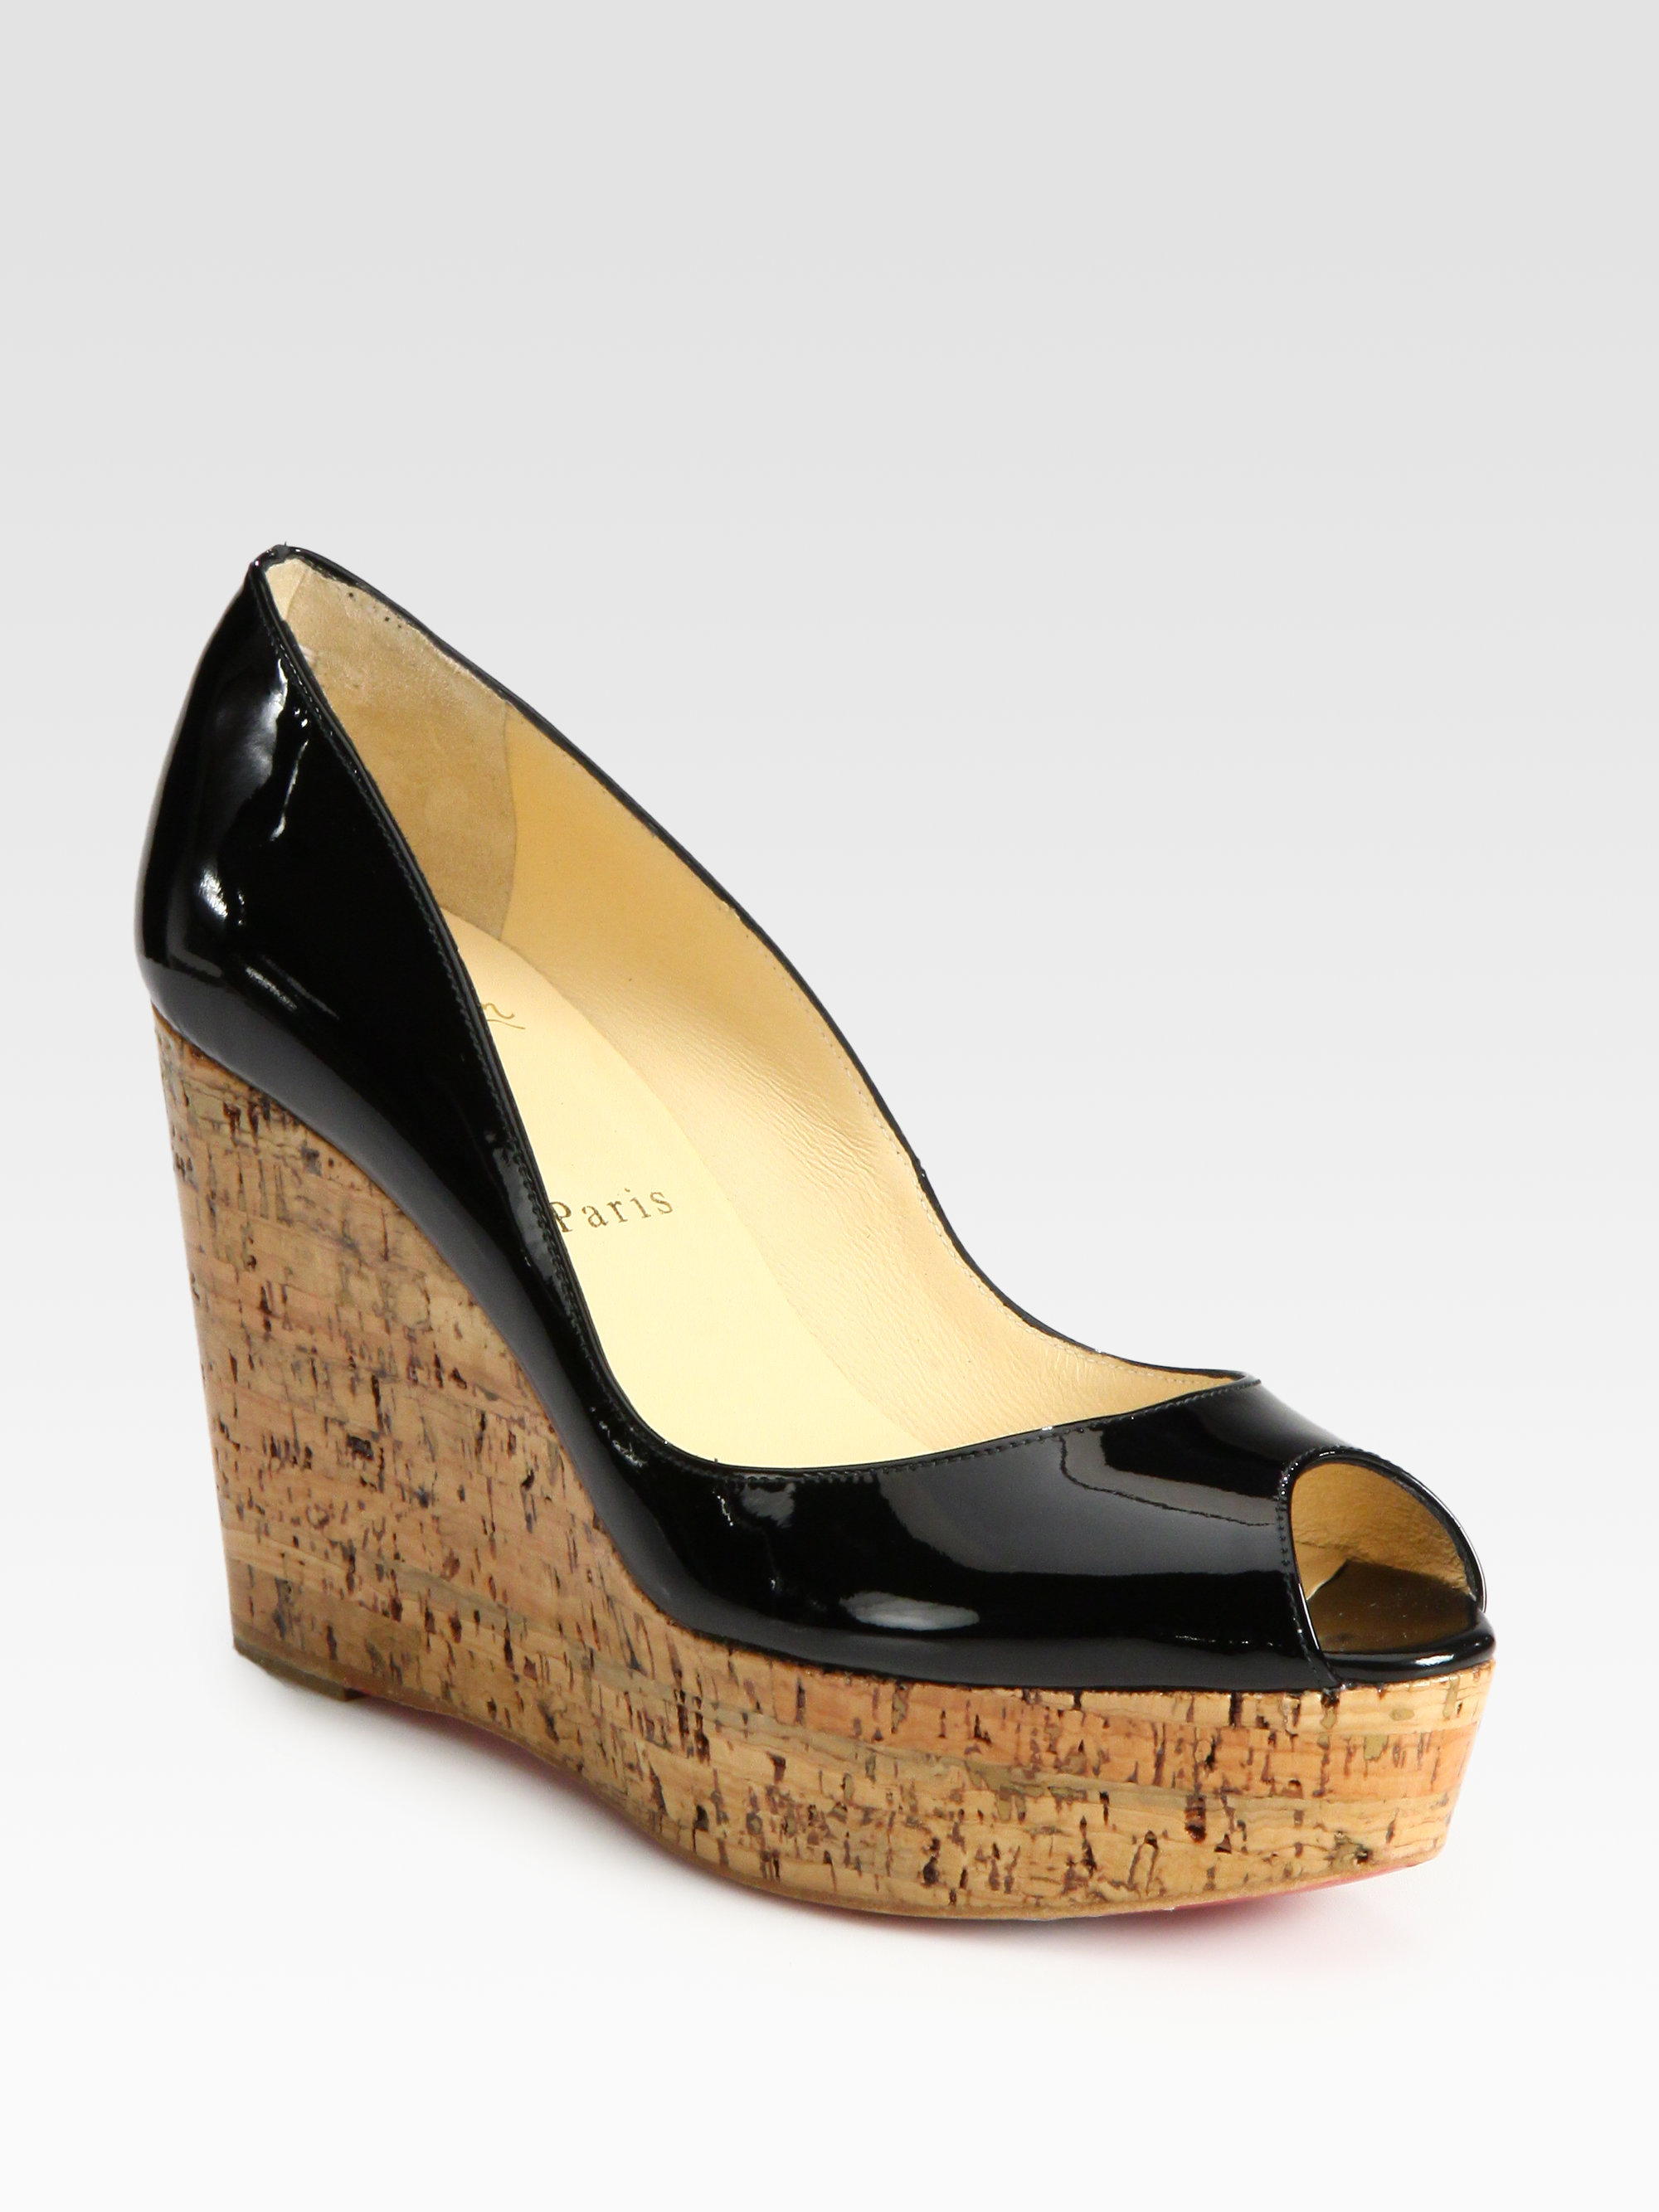 86f7a5465f30 ... get lyst christian louboutin patent leather cork wedge pumps in black  e2b7b 4832c